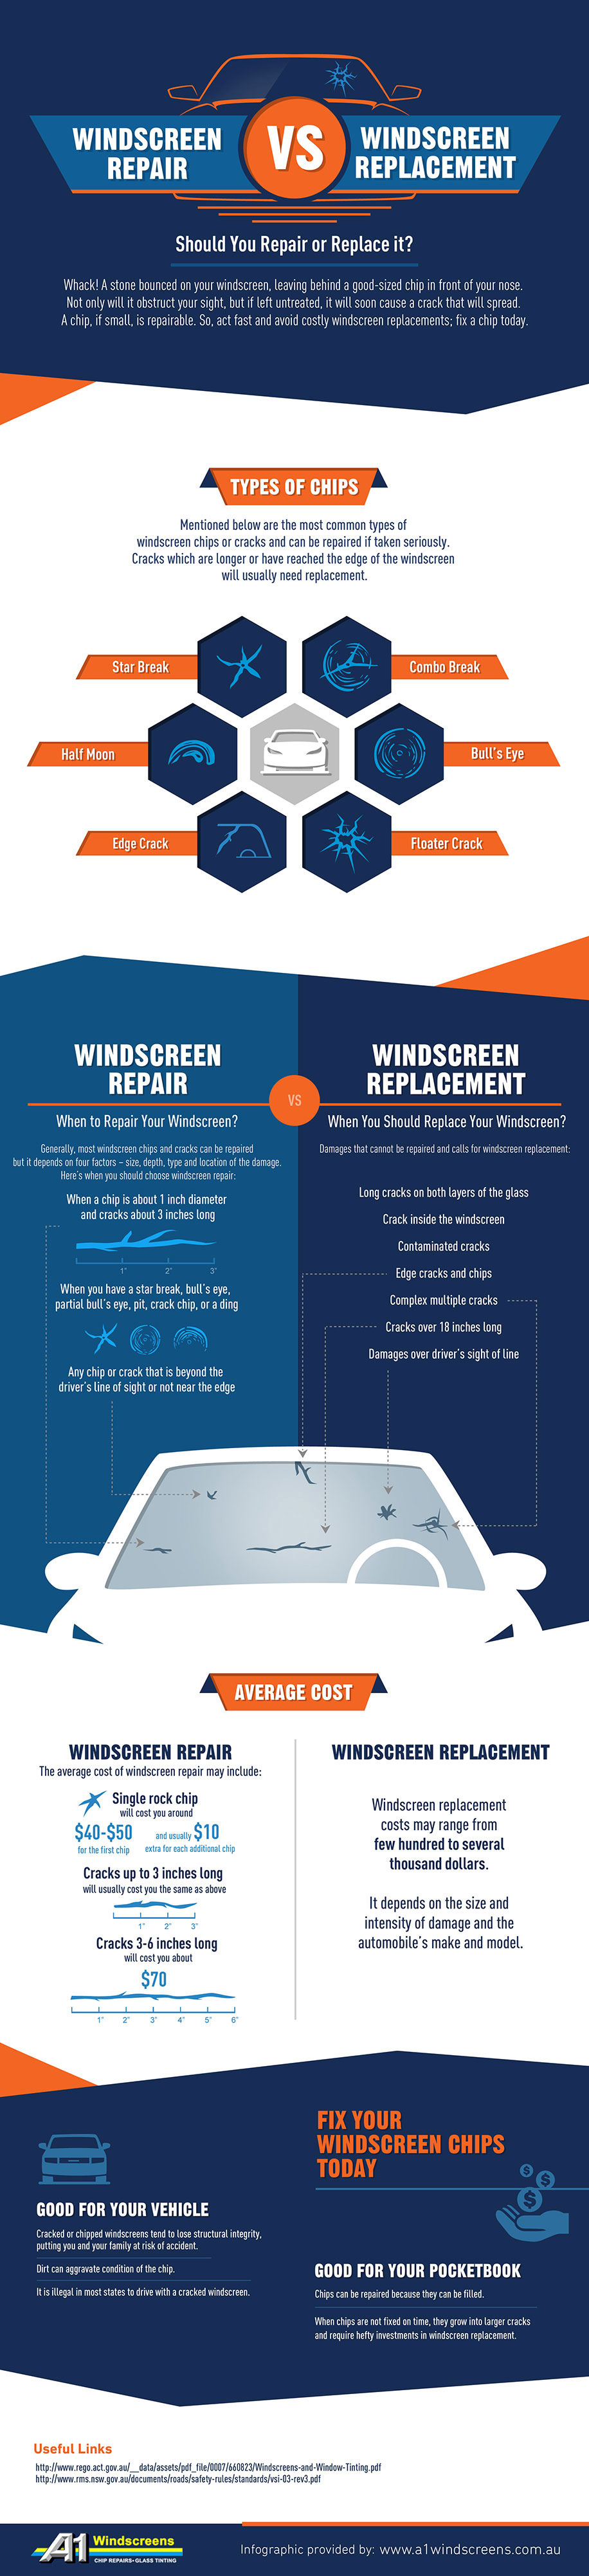 Windscreen Repair vs. Windscreen Replacement